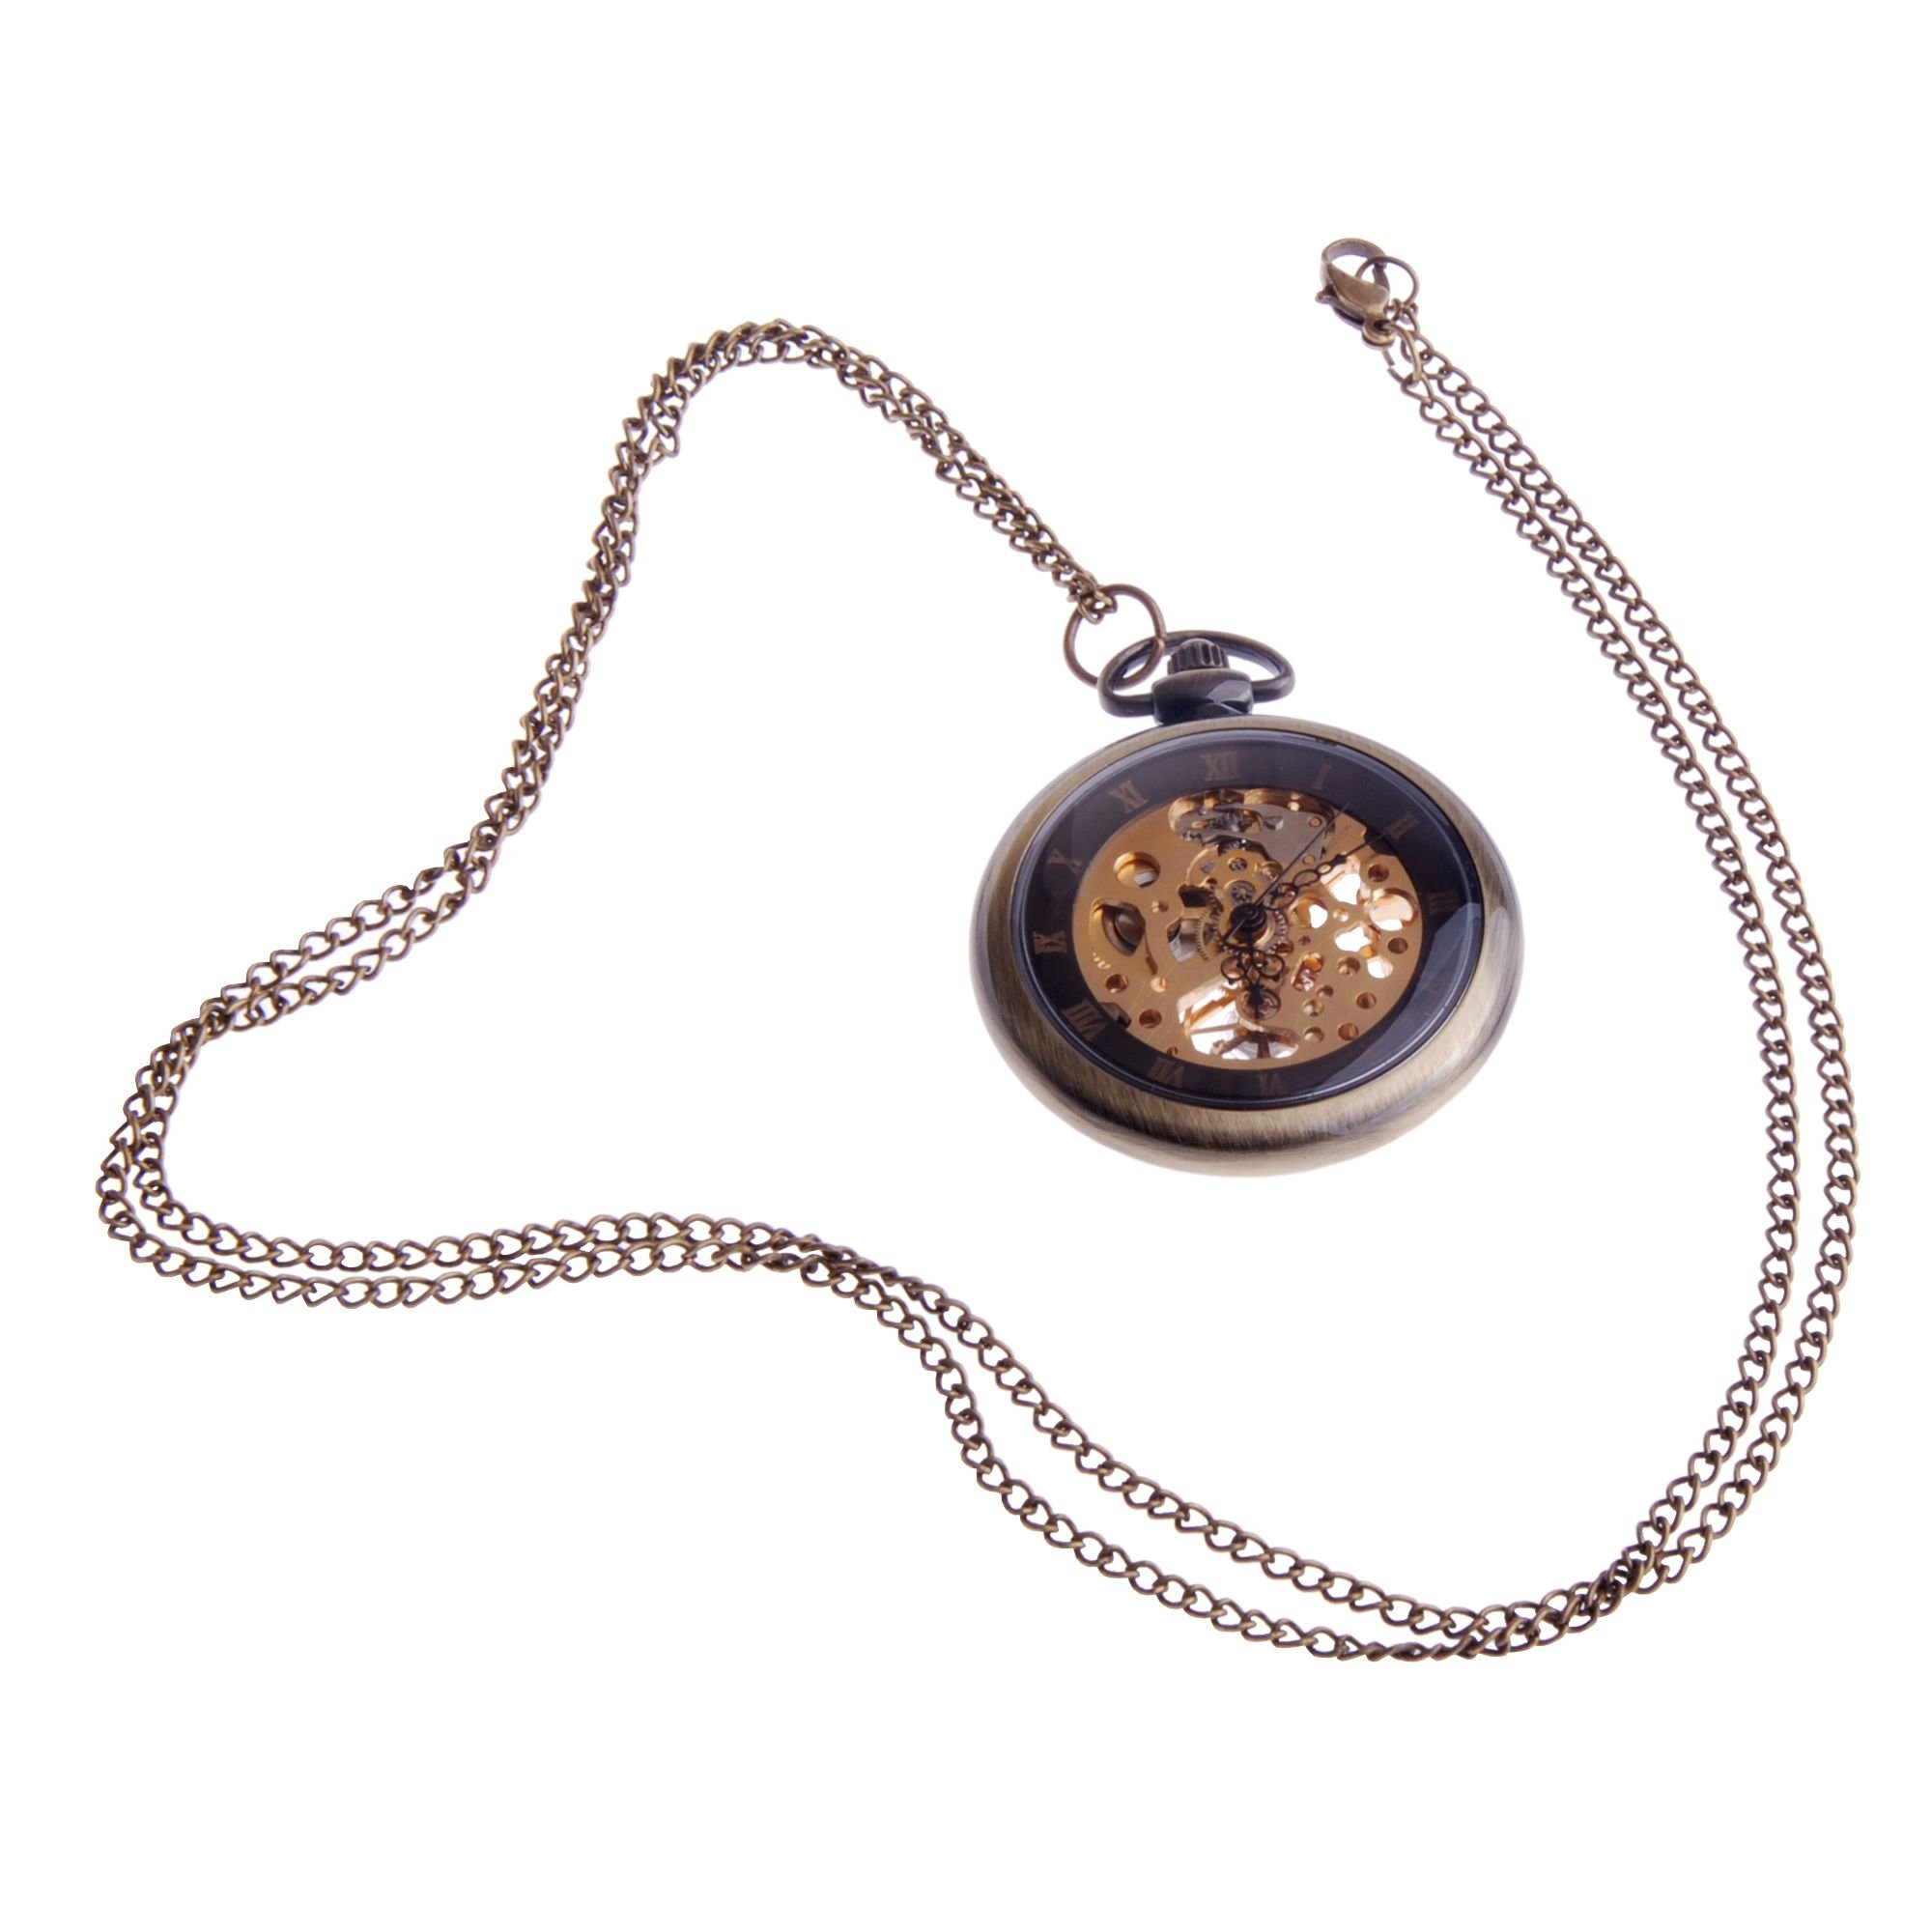 ShoppeWatch Hand Wind Mechanical Skeleton Pocket Watch Open Face Steampunk Style With Chain - PW12 by ShoppeWatch (Image #3)